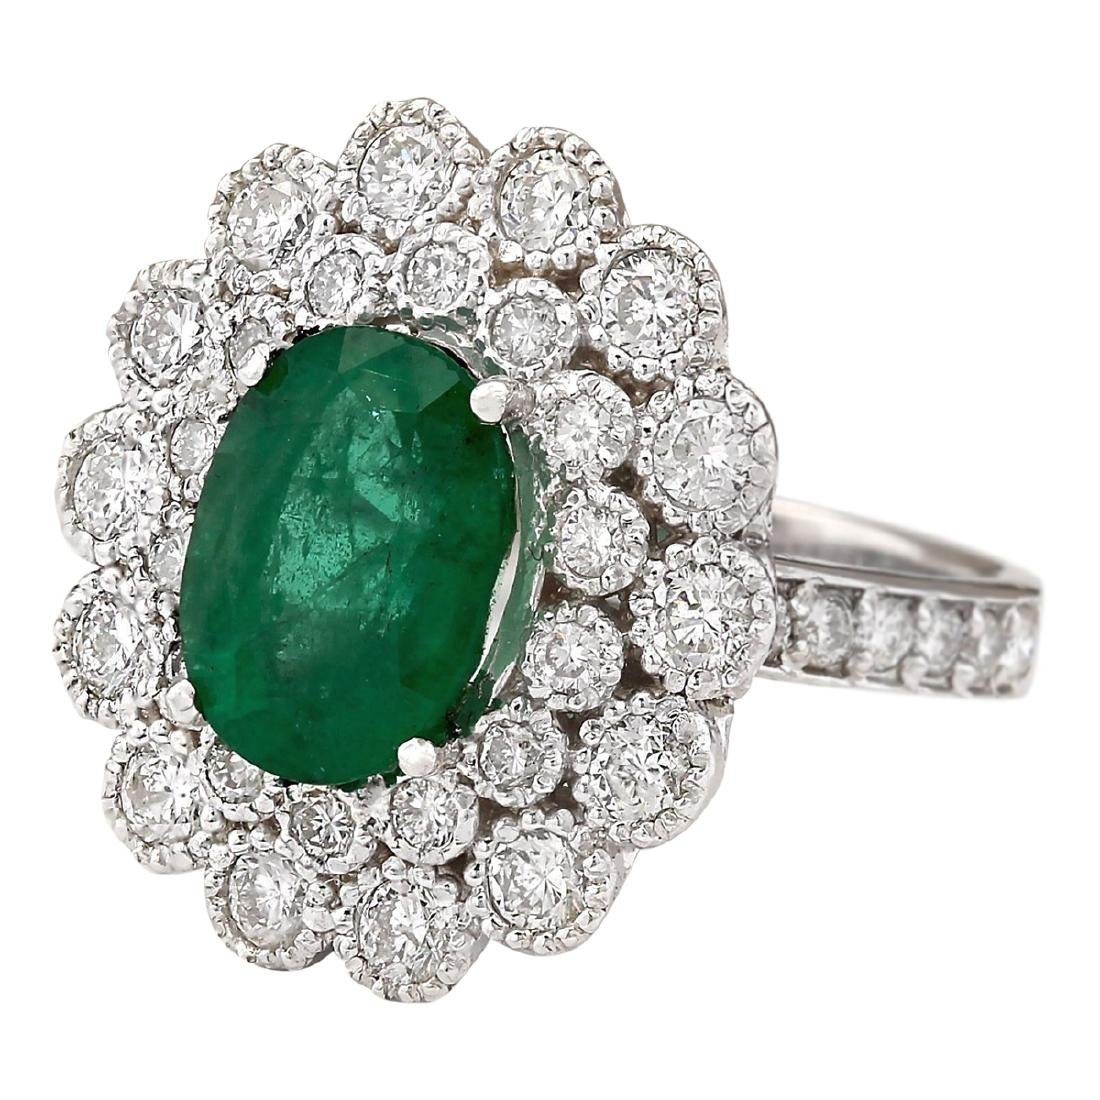 4.43 CTW Natural Emerald And Diamond Ring In 18K White - 2